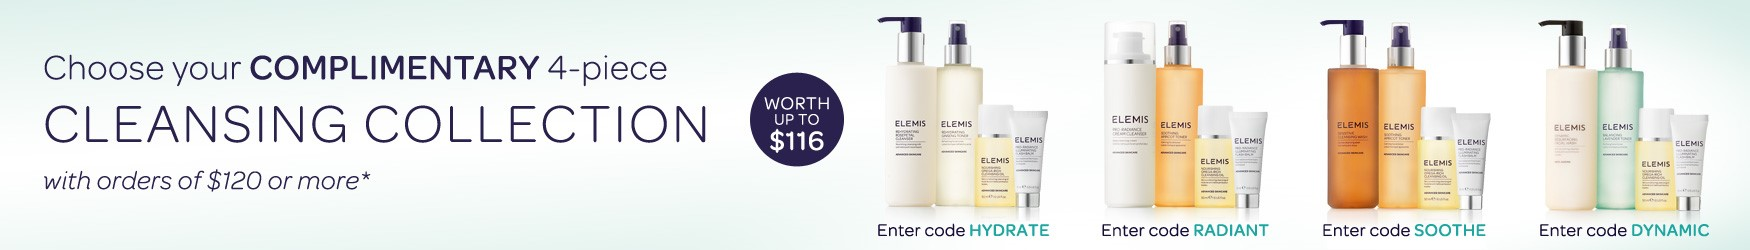 Receive a complimentary cleansing collection on orders of $120 or more